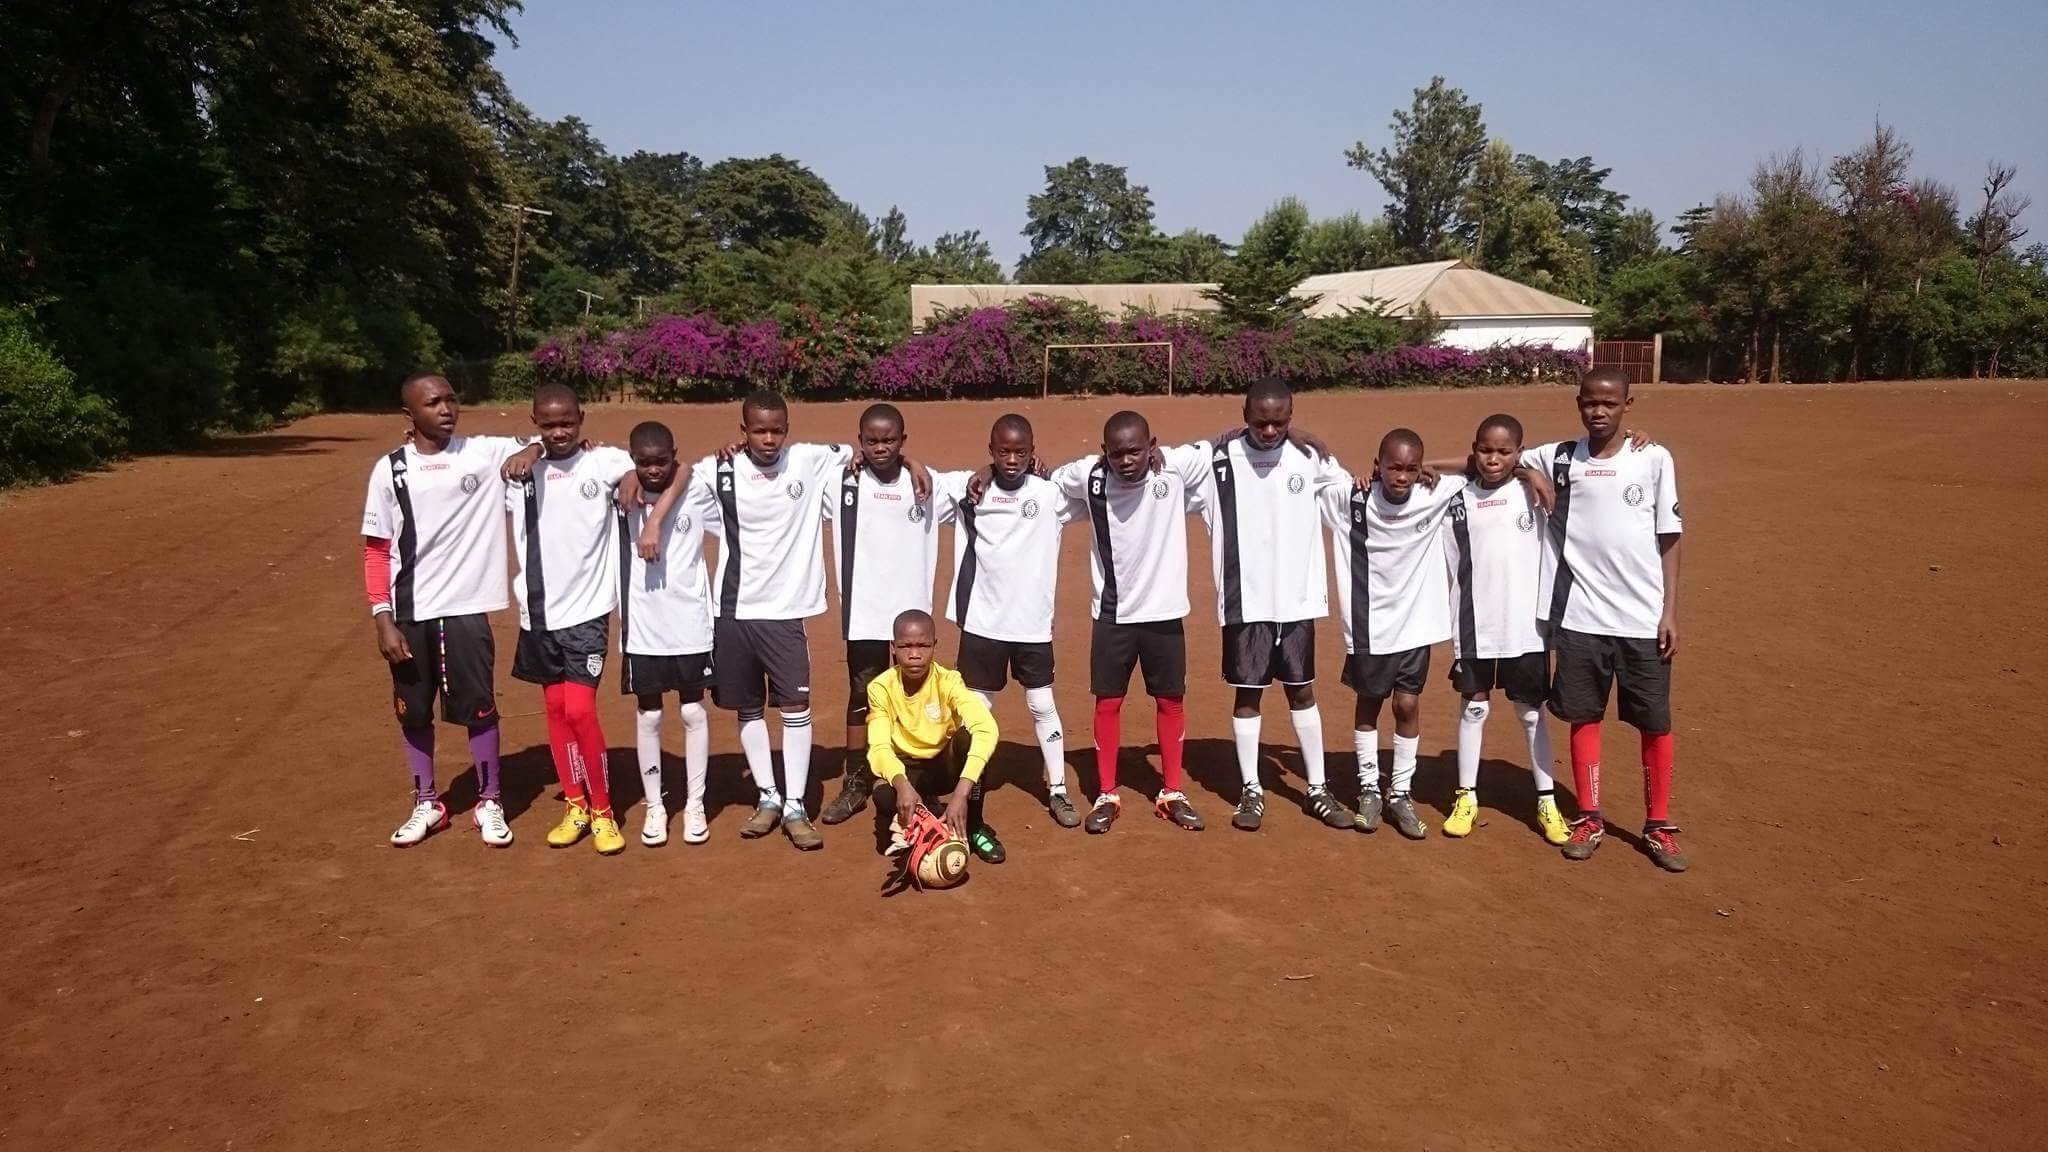 Simbas Cubs the Simbas Footprints Community Center football team.